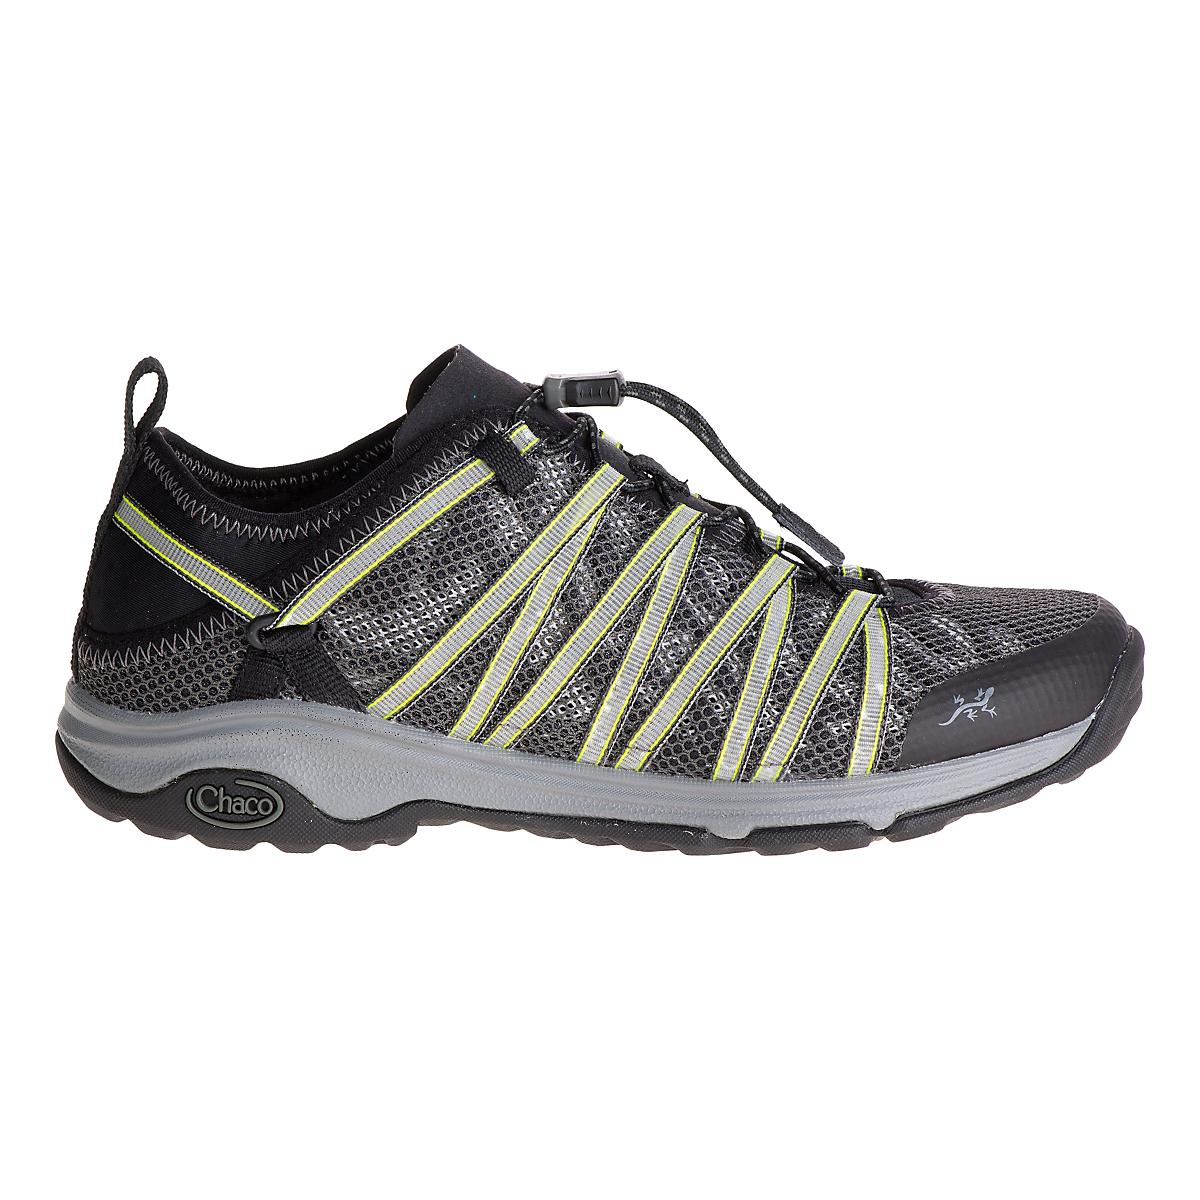 Women's Chaco�Outcross EVO 1.5